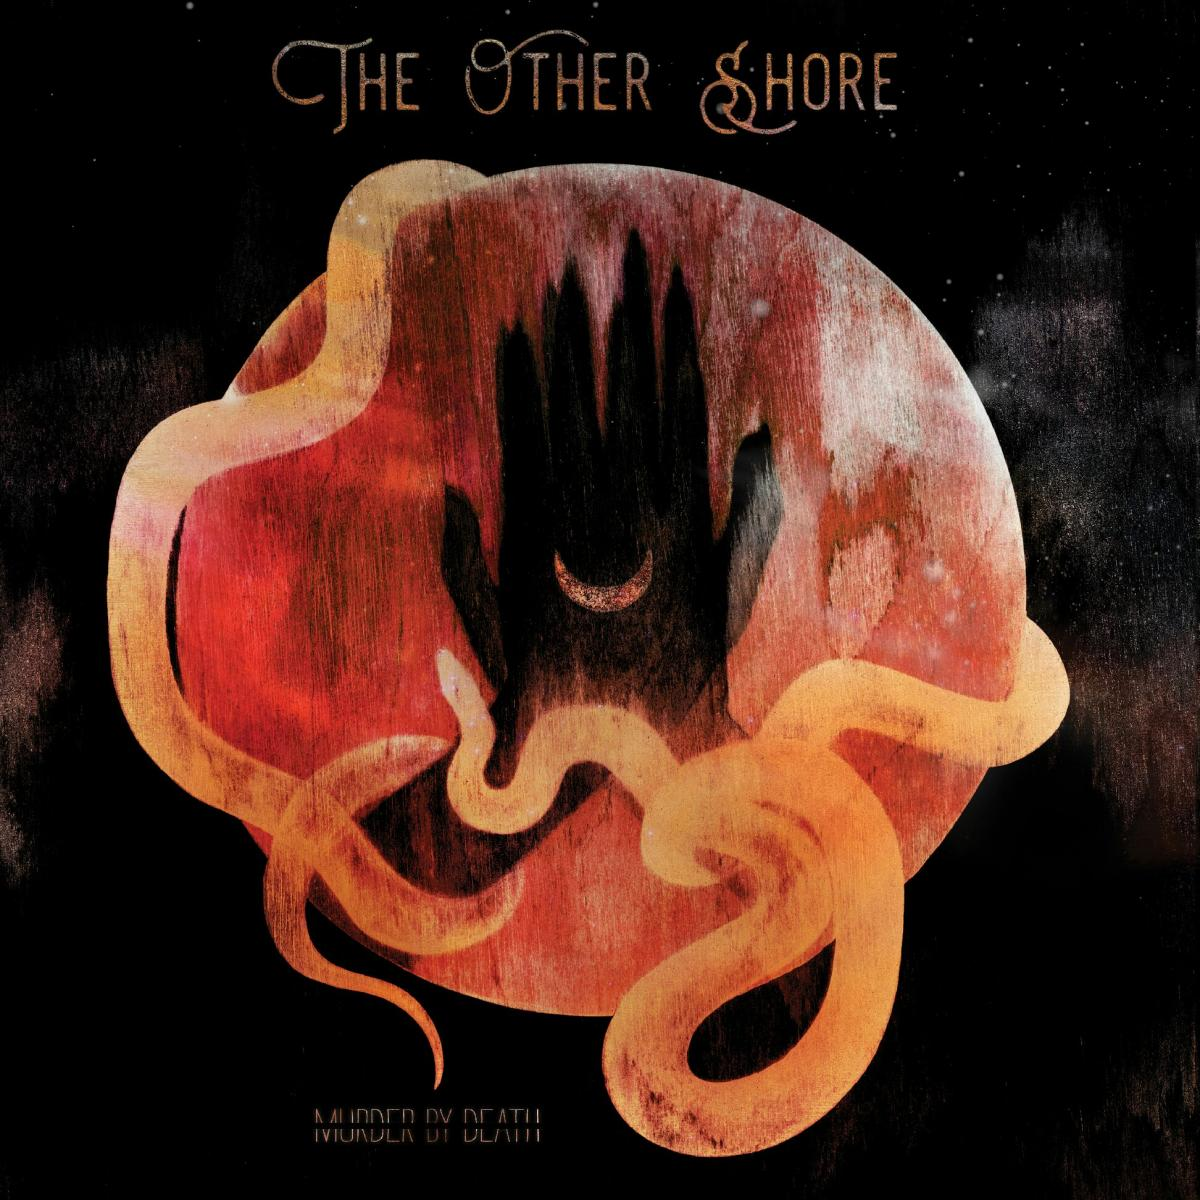 Murder By Death The Other Shore Album Cover Art